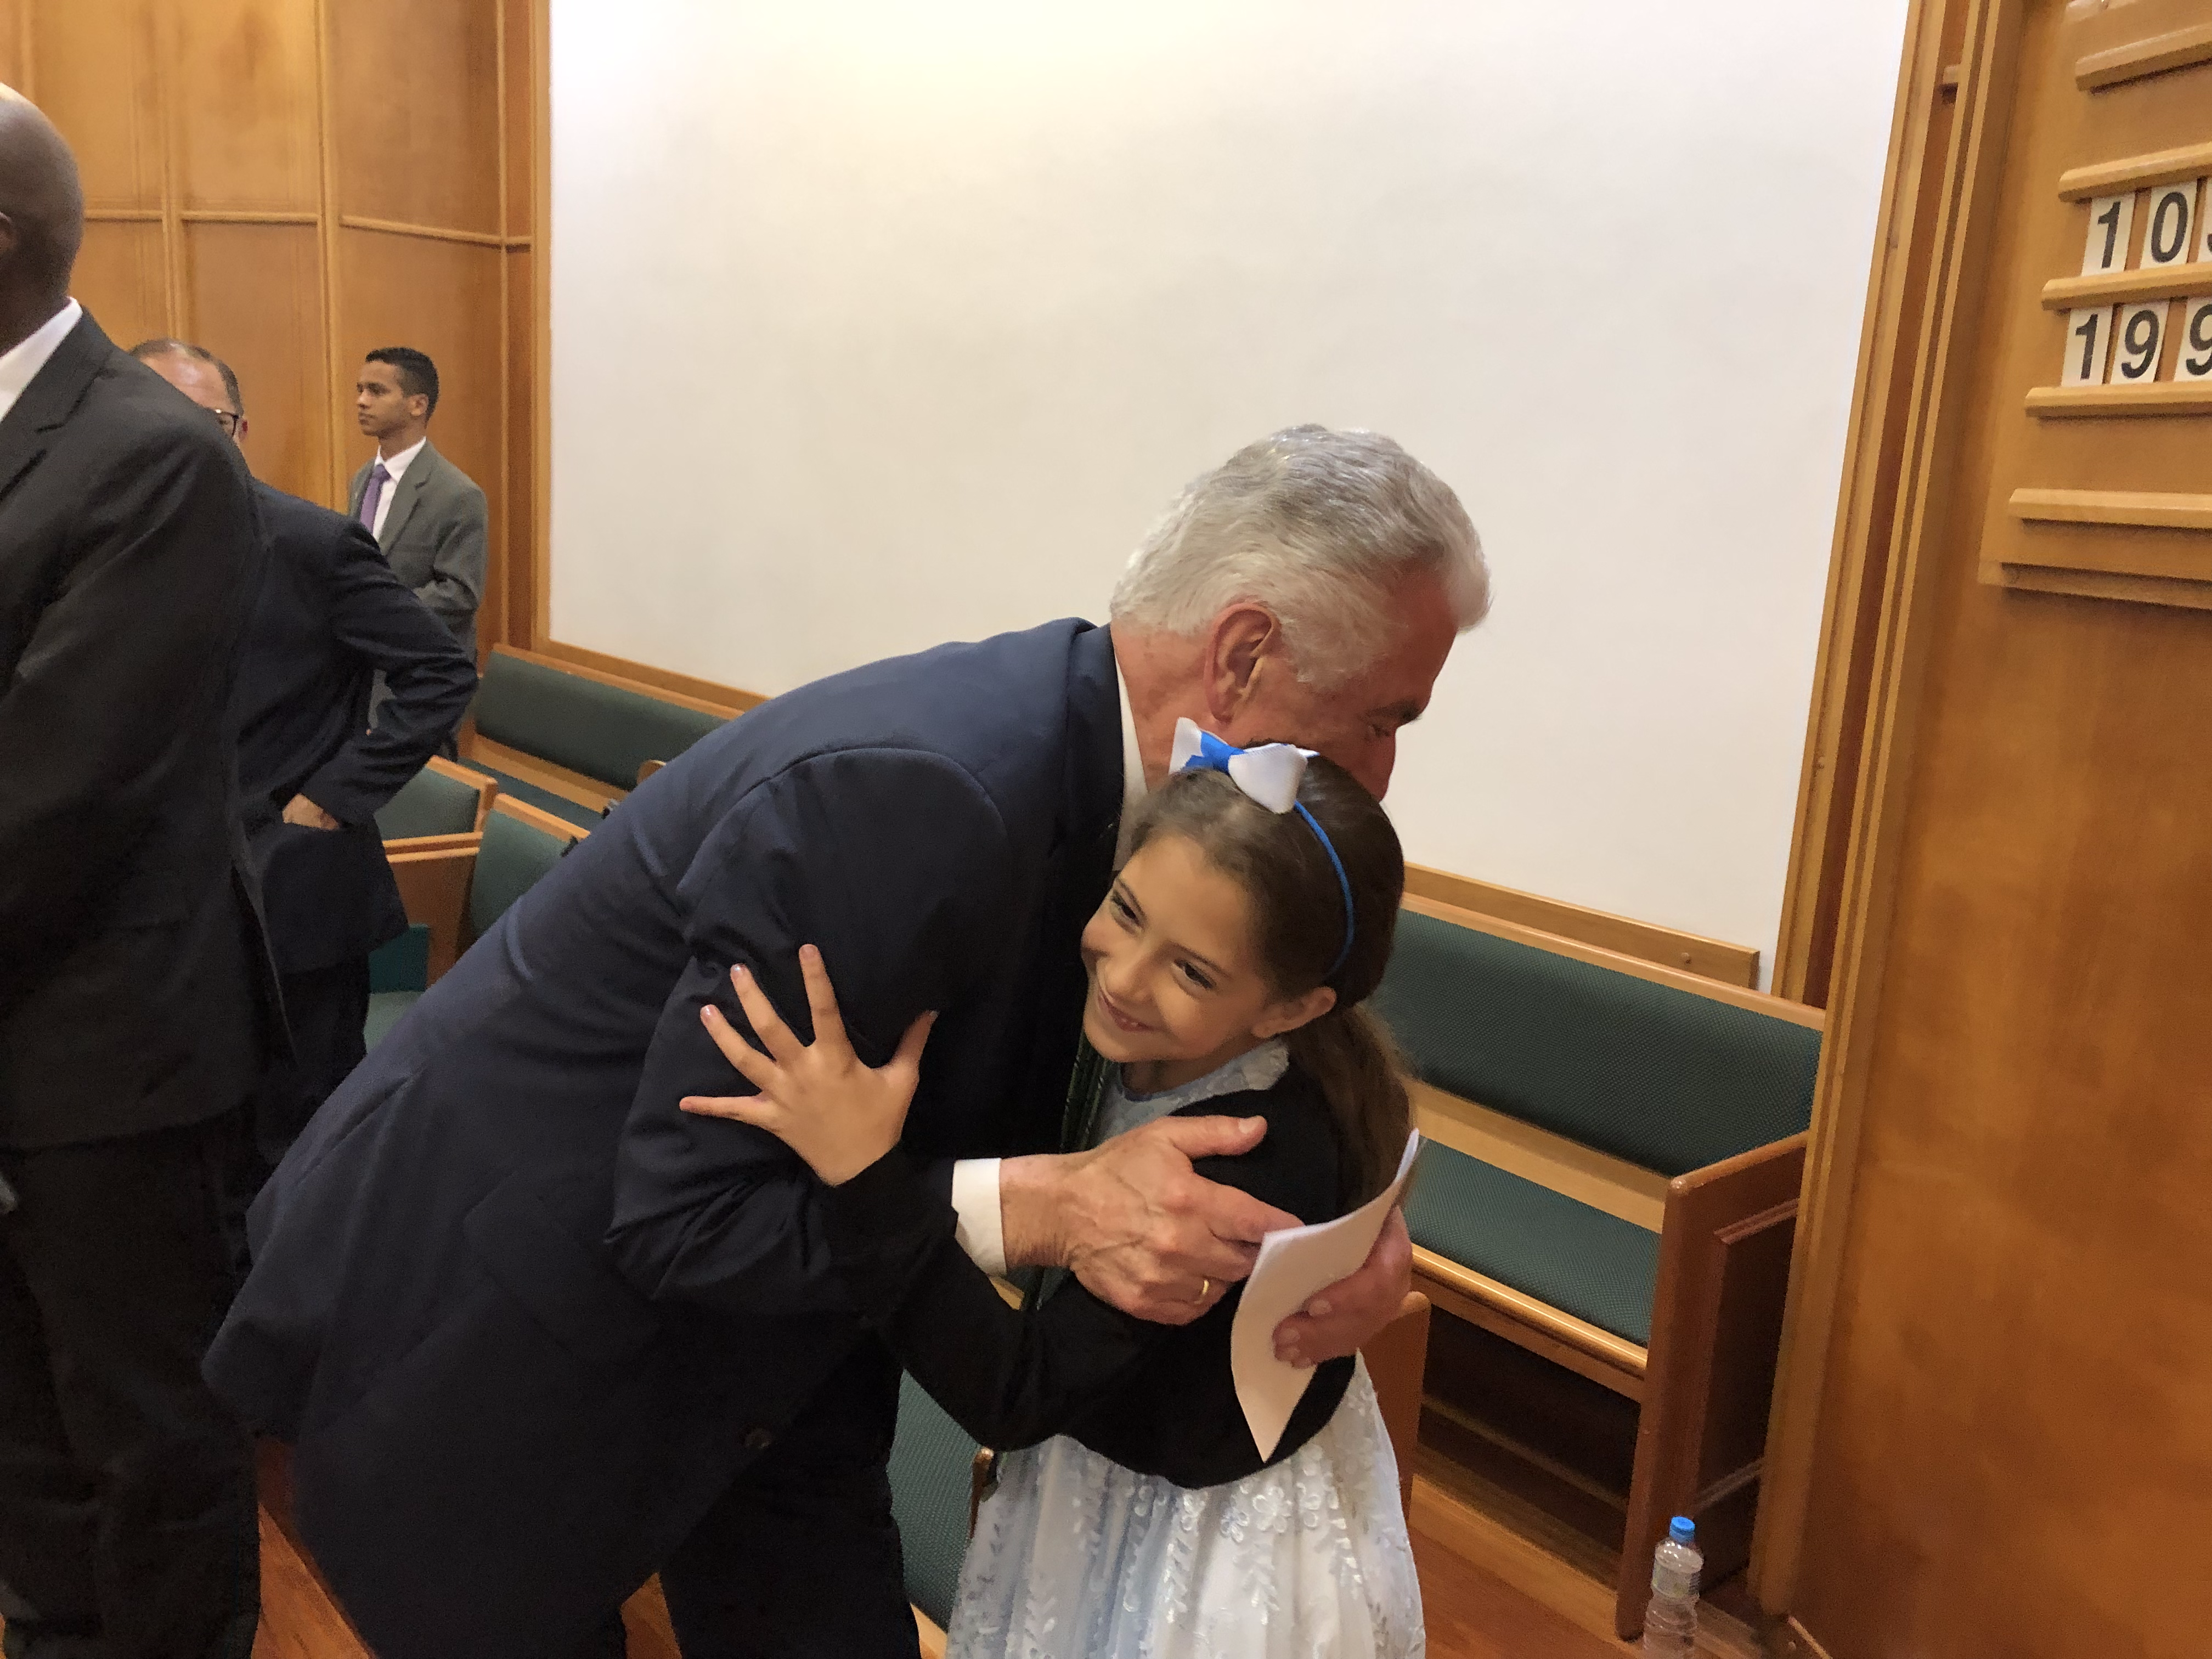 After a young child of the Jaraguá Ward of the Sao Paulo Brazil Jaragua Stake rushed up to give him a post-meeting hug, Elder Dieter F. Uchtdorf of the Quorum of the Twelve Apostles returns the gesture in February 2019.